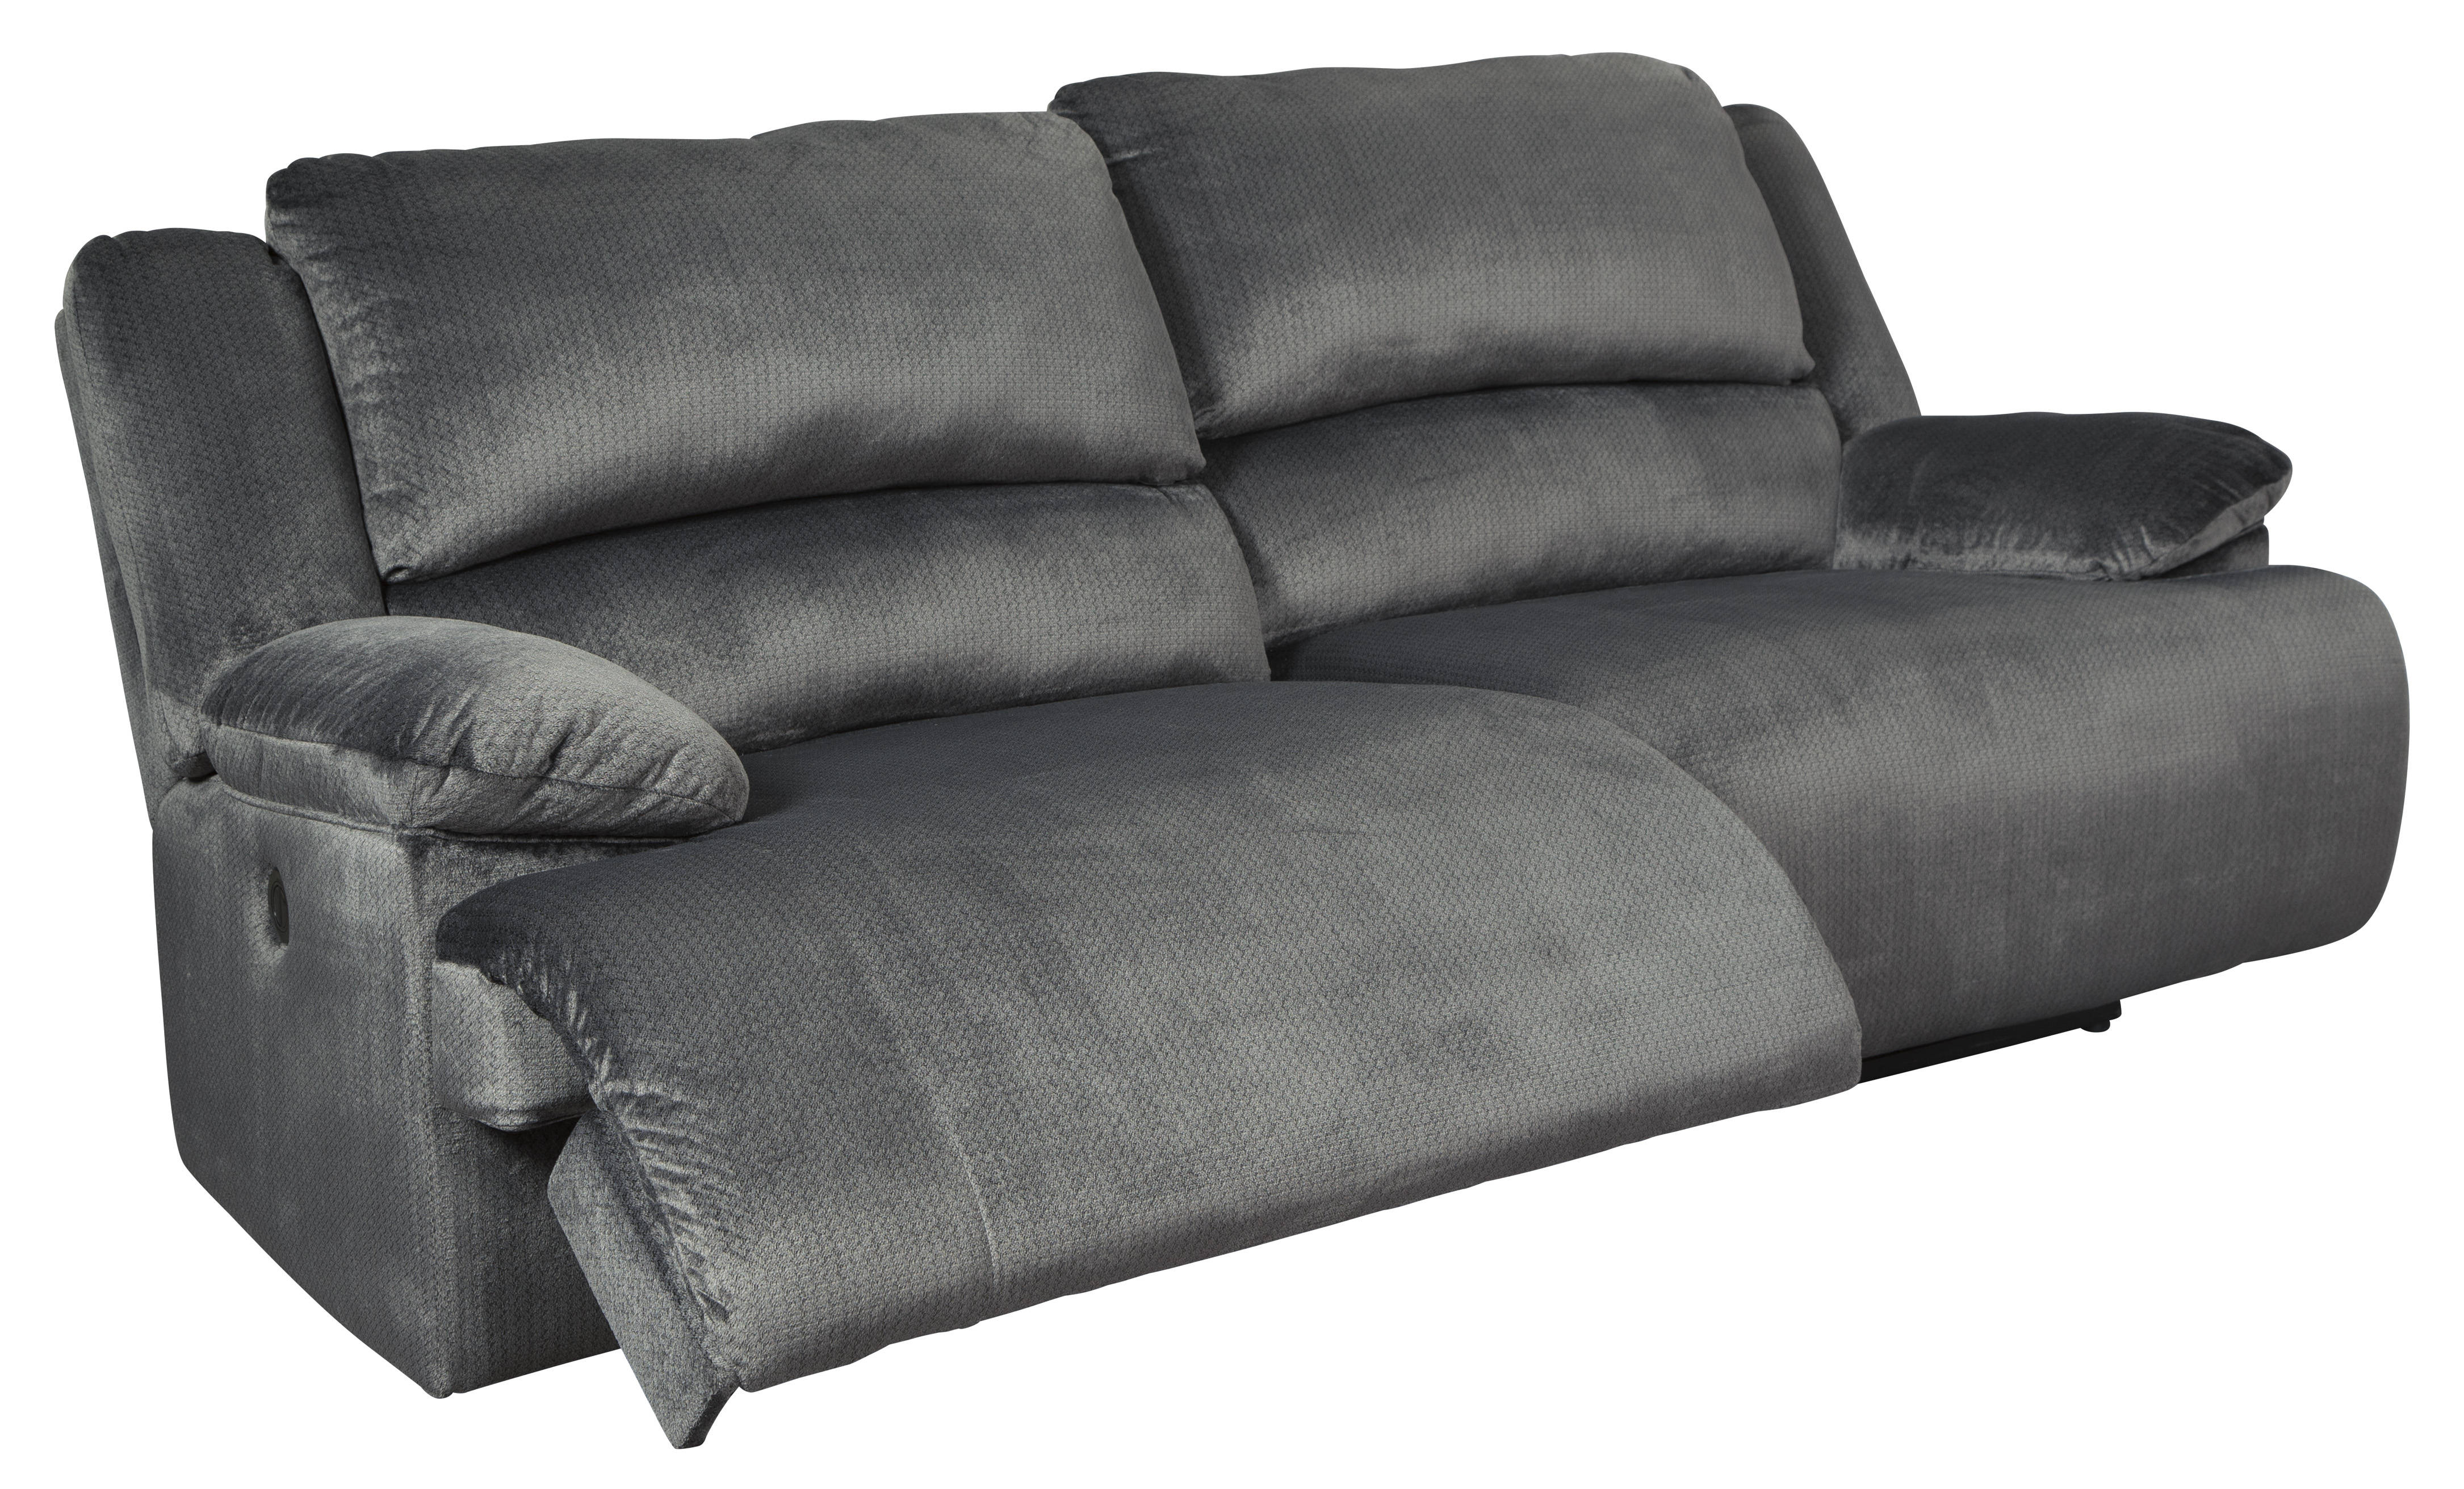 Enjoyable Ashley Furniture Clonmel Charcoal 2 Seat Reclining Sofa Home Interior And Landscaping Mentranervesignezvosmurscom